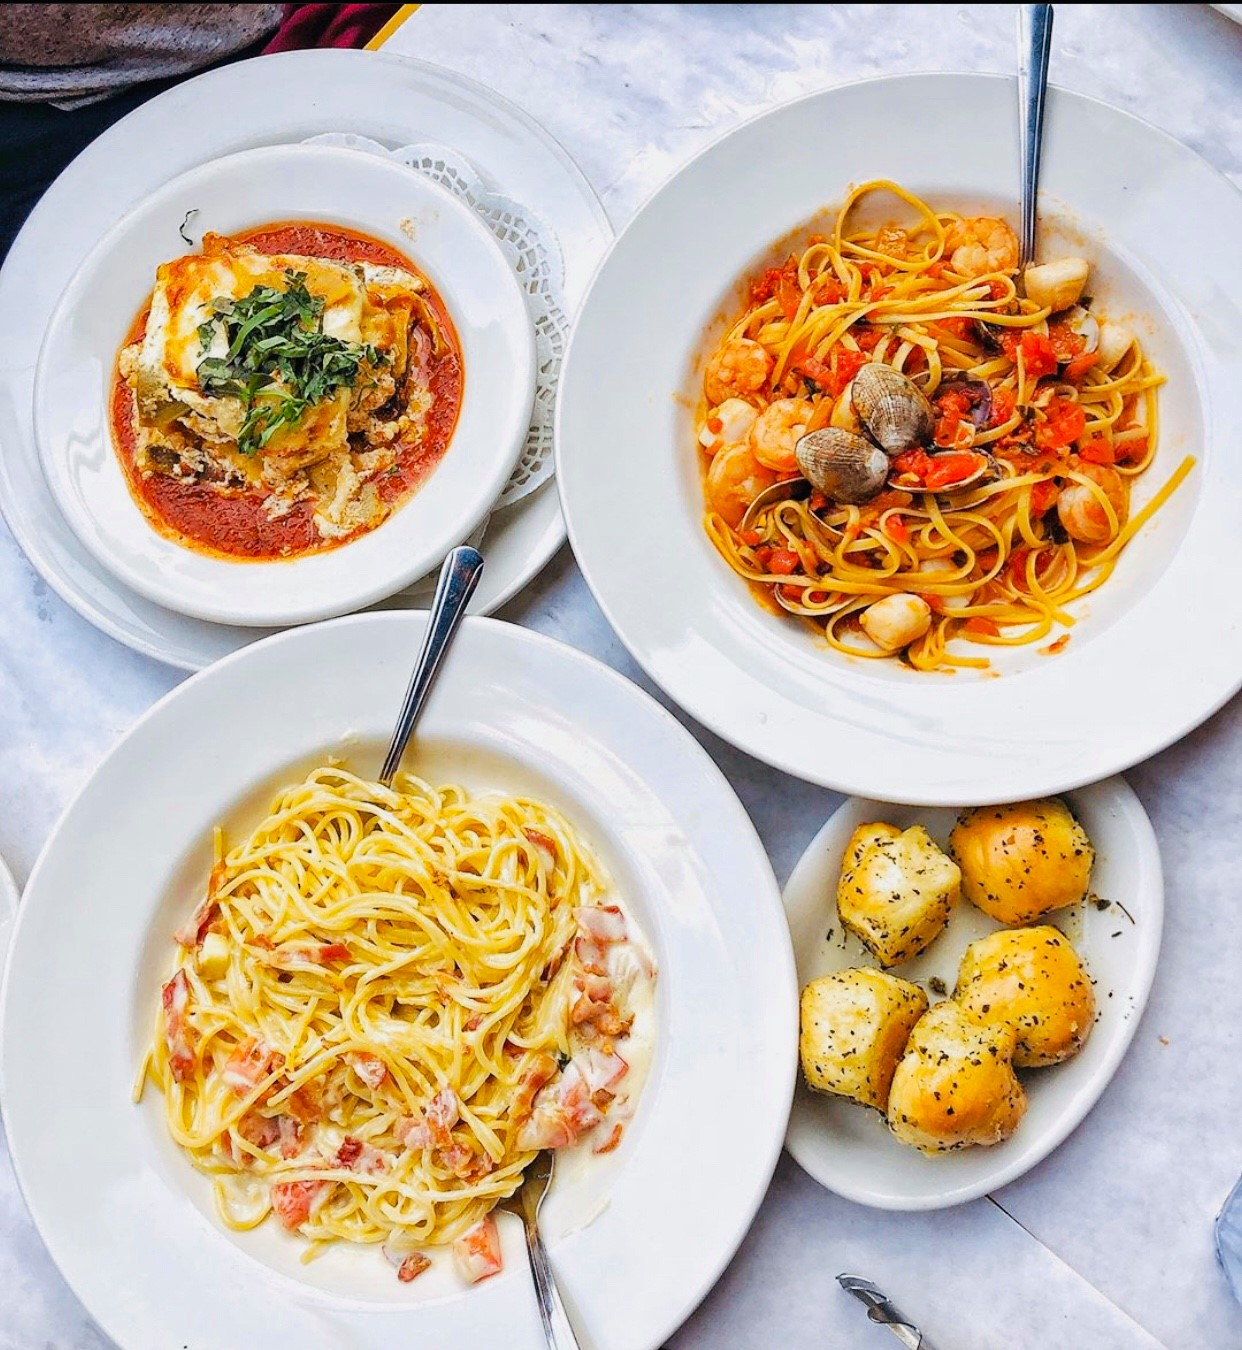 Four white plates hold classic Italian food including seafood pasta and garlic knots.